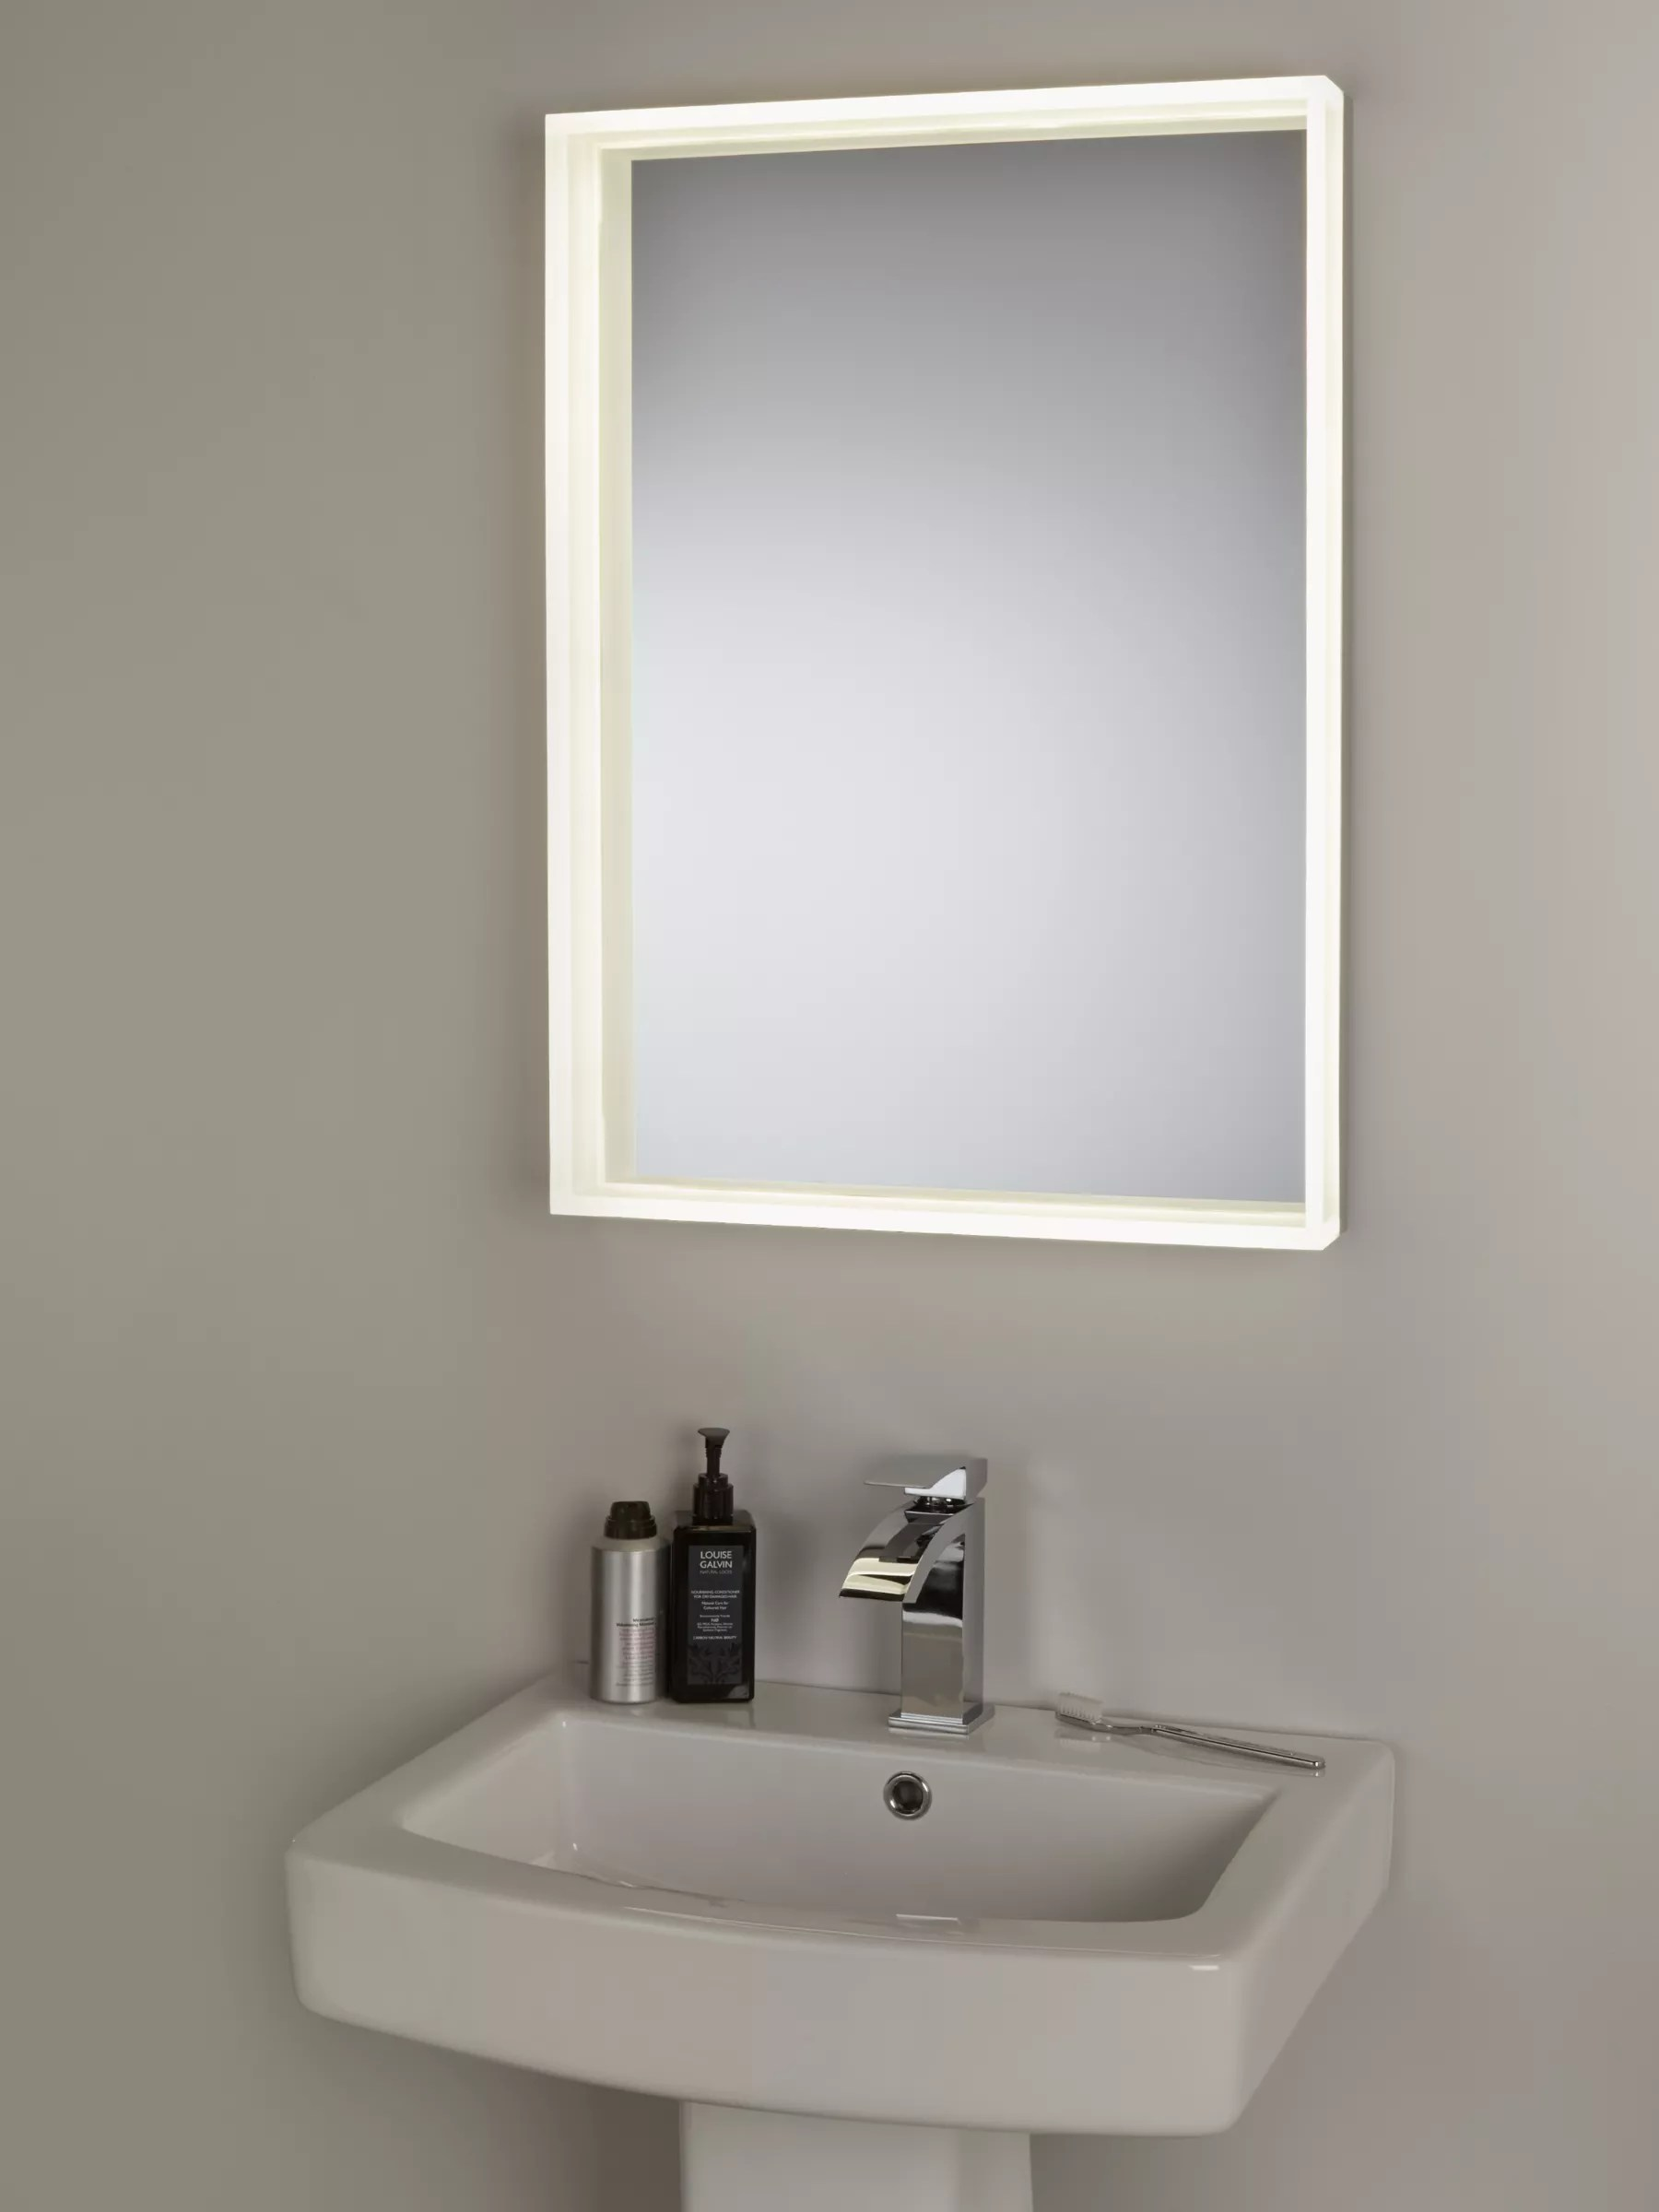 Tv In Bathroom Mirror Price John Lewis And Partners Led Prism Illuminated Bathroom